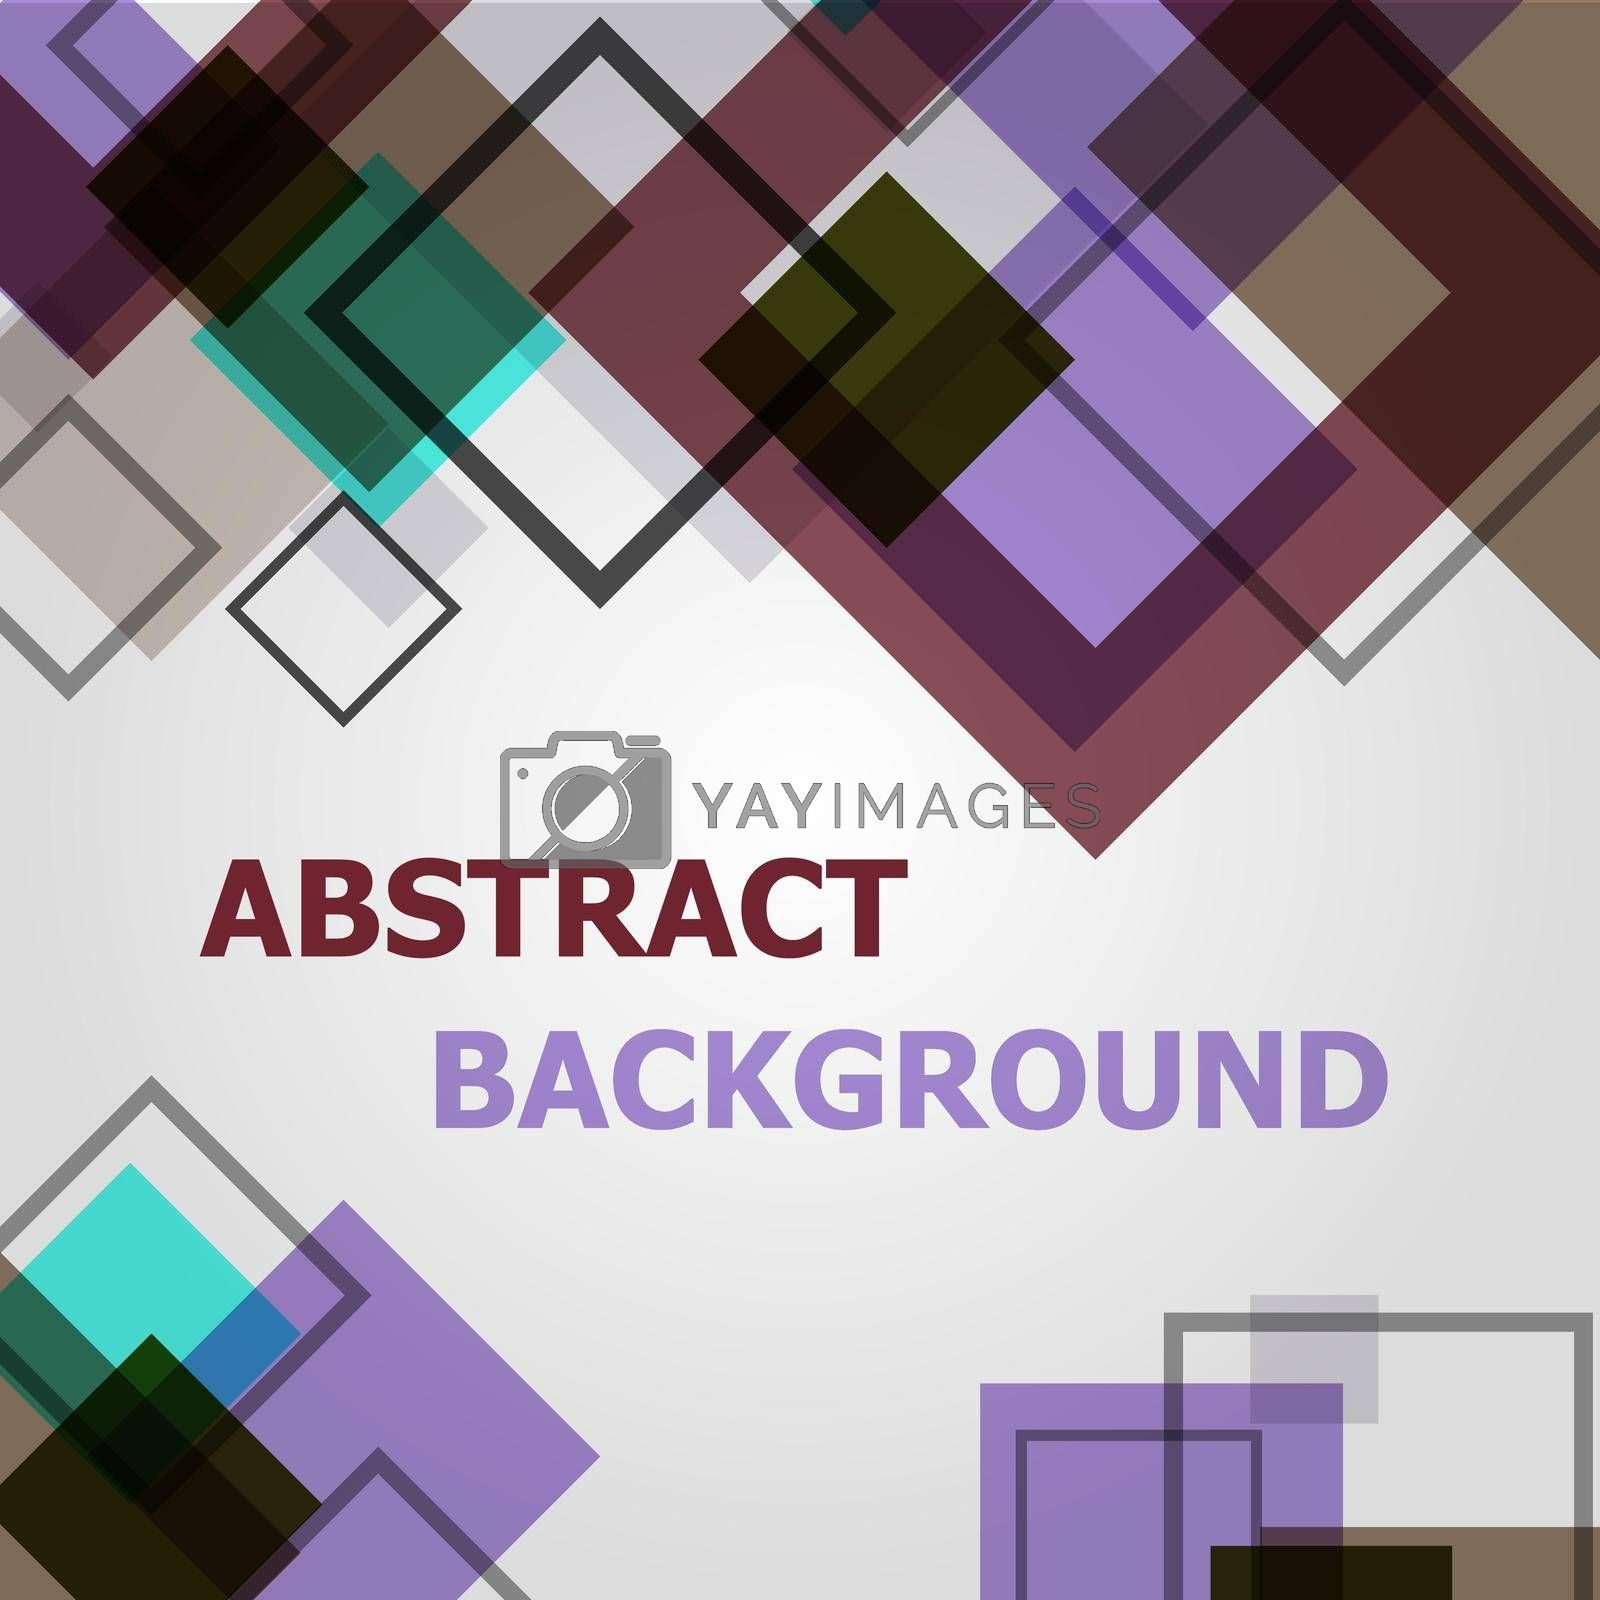 Royalty free image of Abstract square geometric pattern design background by punsayaporn